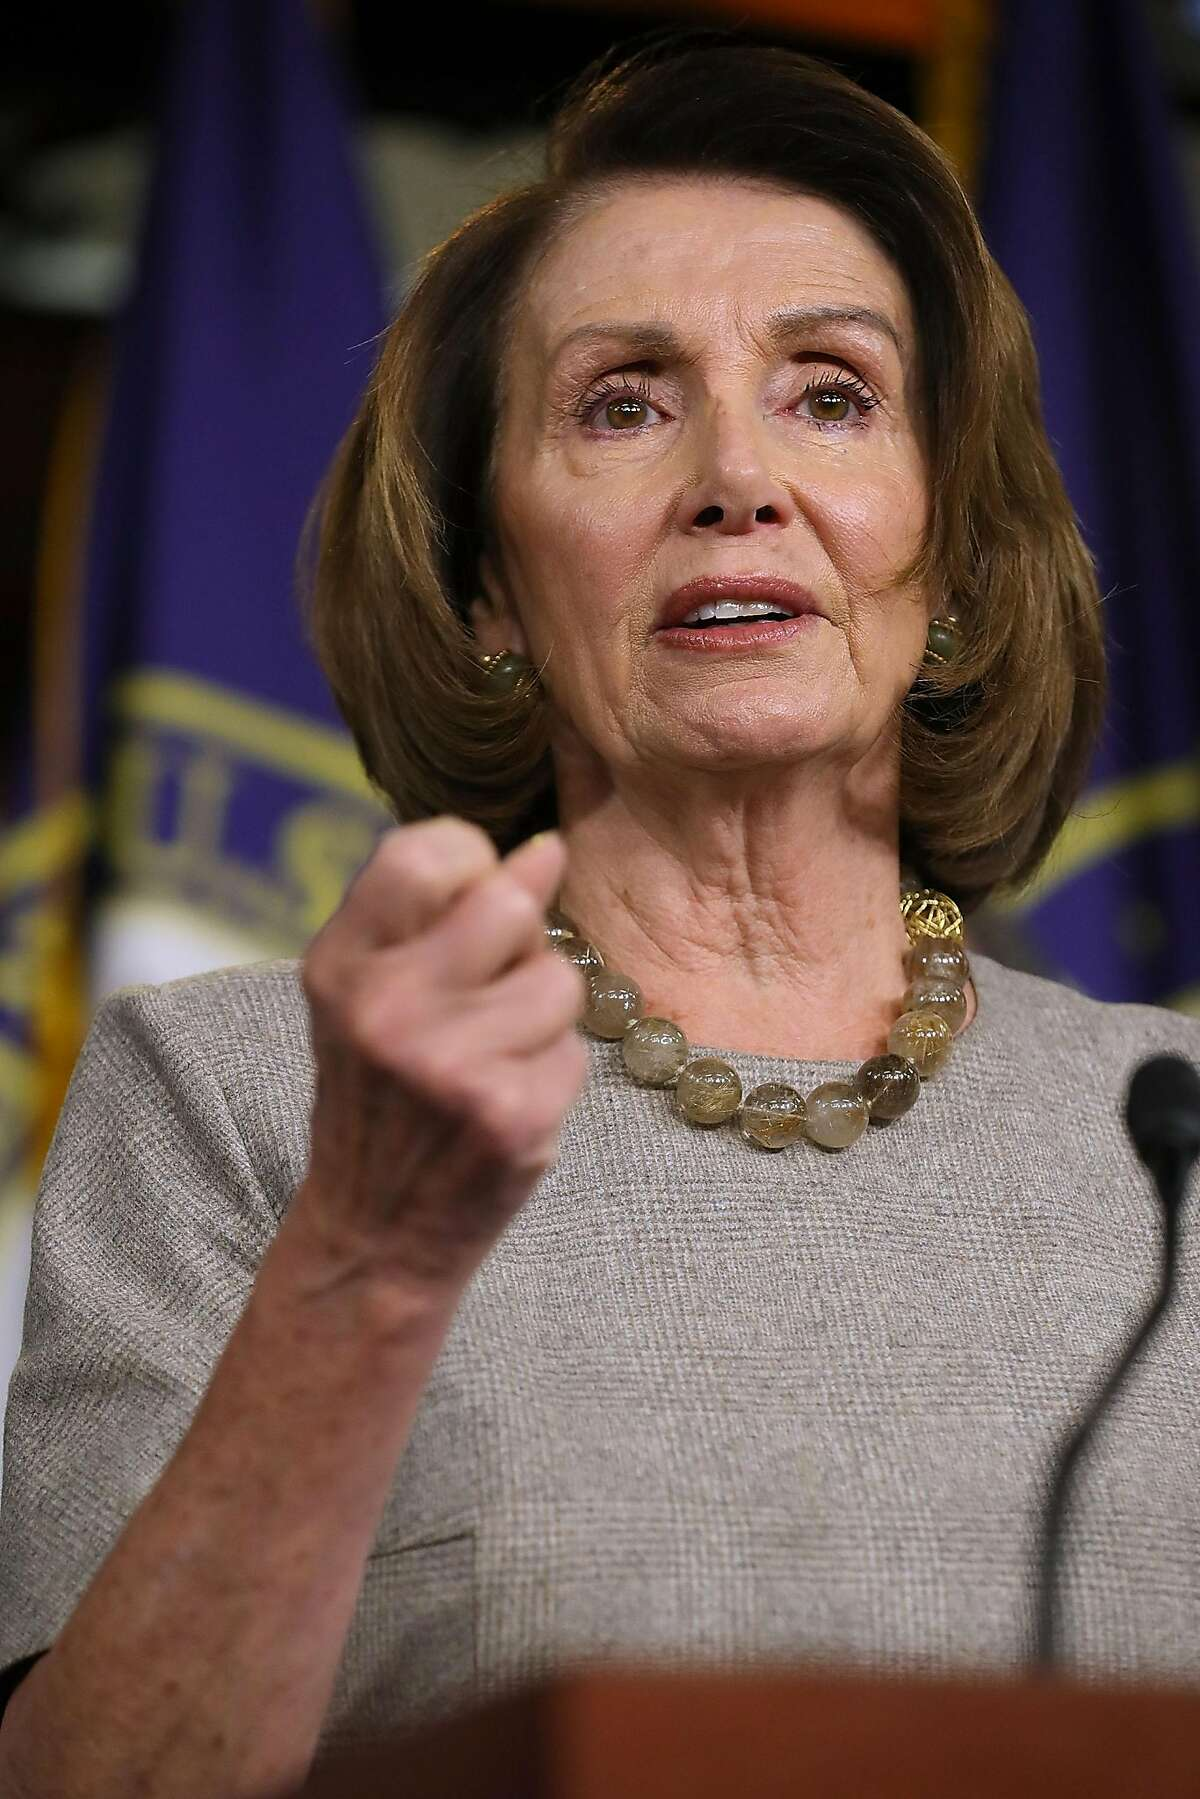 House Minority Leader Nancy Pelosi (D-CA) talks to reporters while announcing the House Democrats' new infrastructure plan during a news conference at the U.S. Capitol February 8, 2018 in Washington, DC.